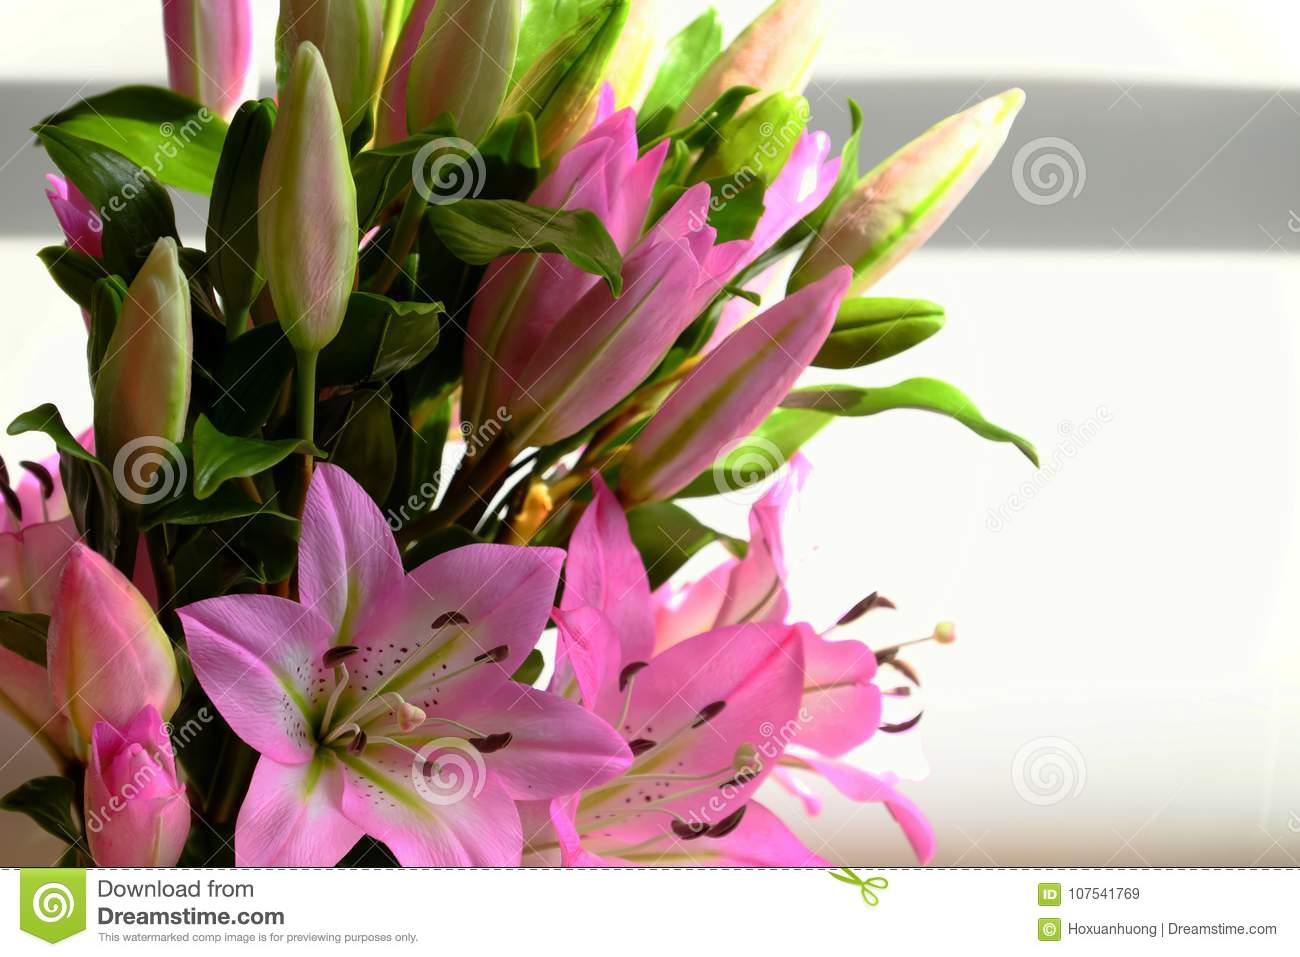 Bunch of purple lily flower stock image image of flowers download bunch of purple lily flower stock image image of flowers background 107541769 izmirmasajfo